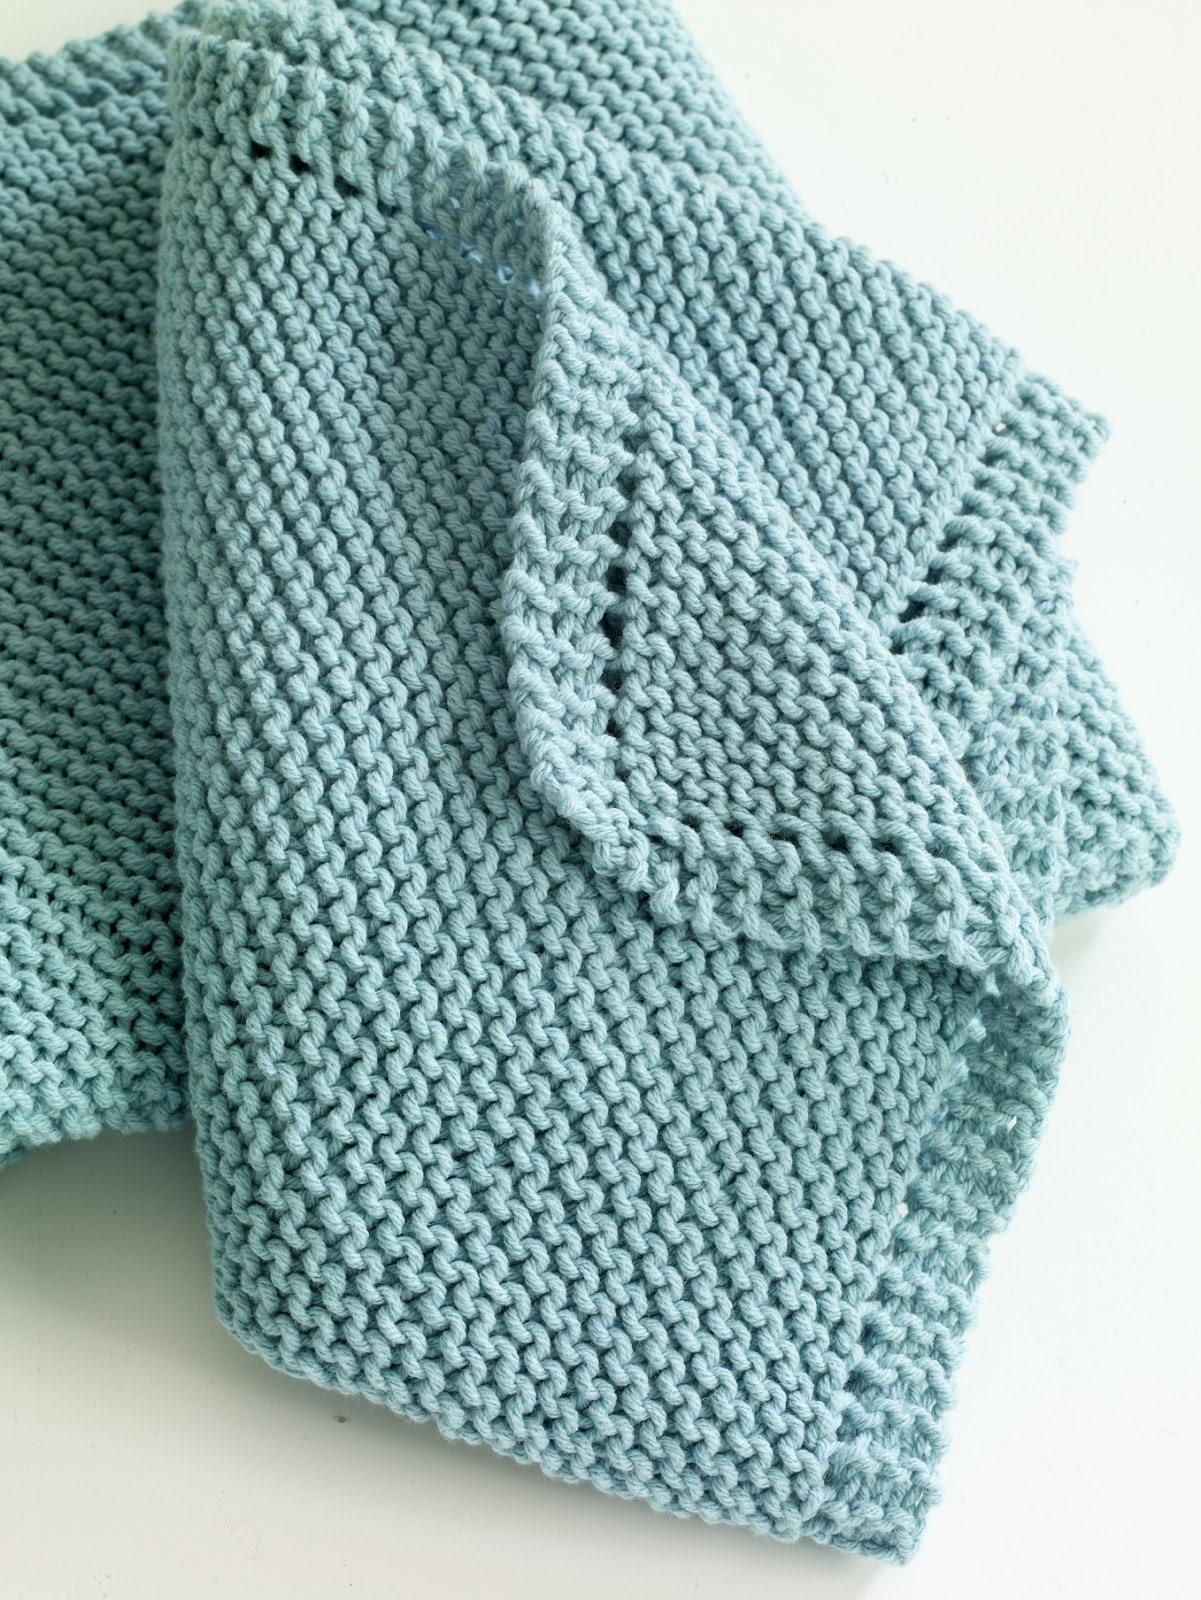 Free Blanket Knitting Patterns : Serenity Knits